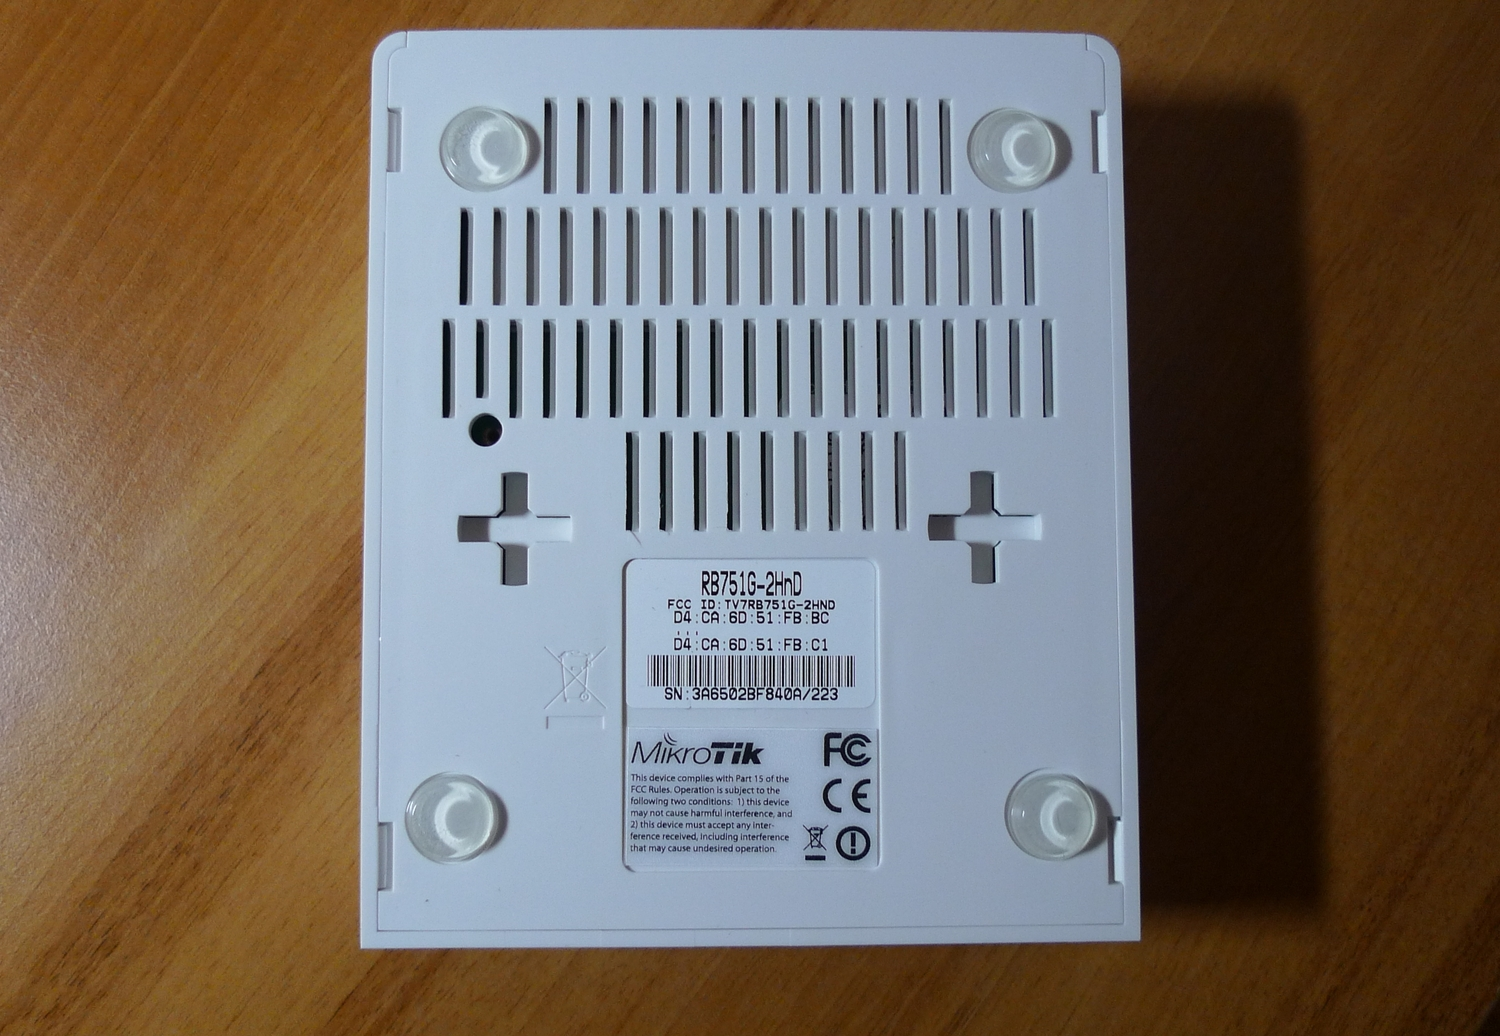 mikrotik routerboard rb751g-2hnd